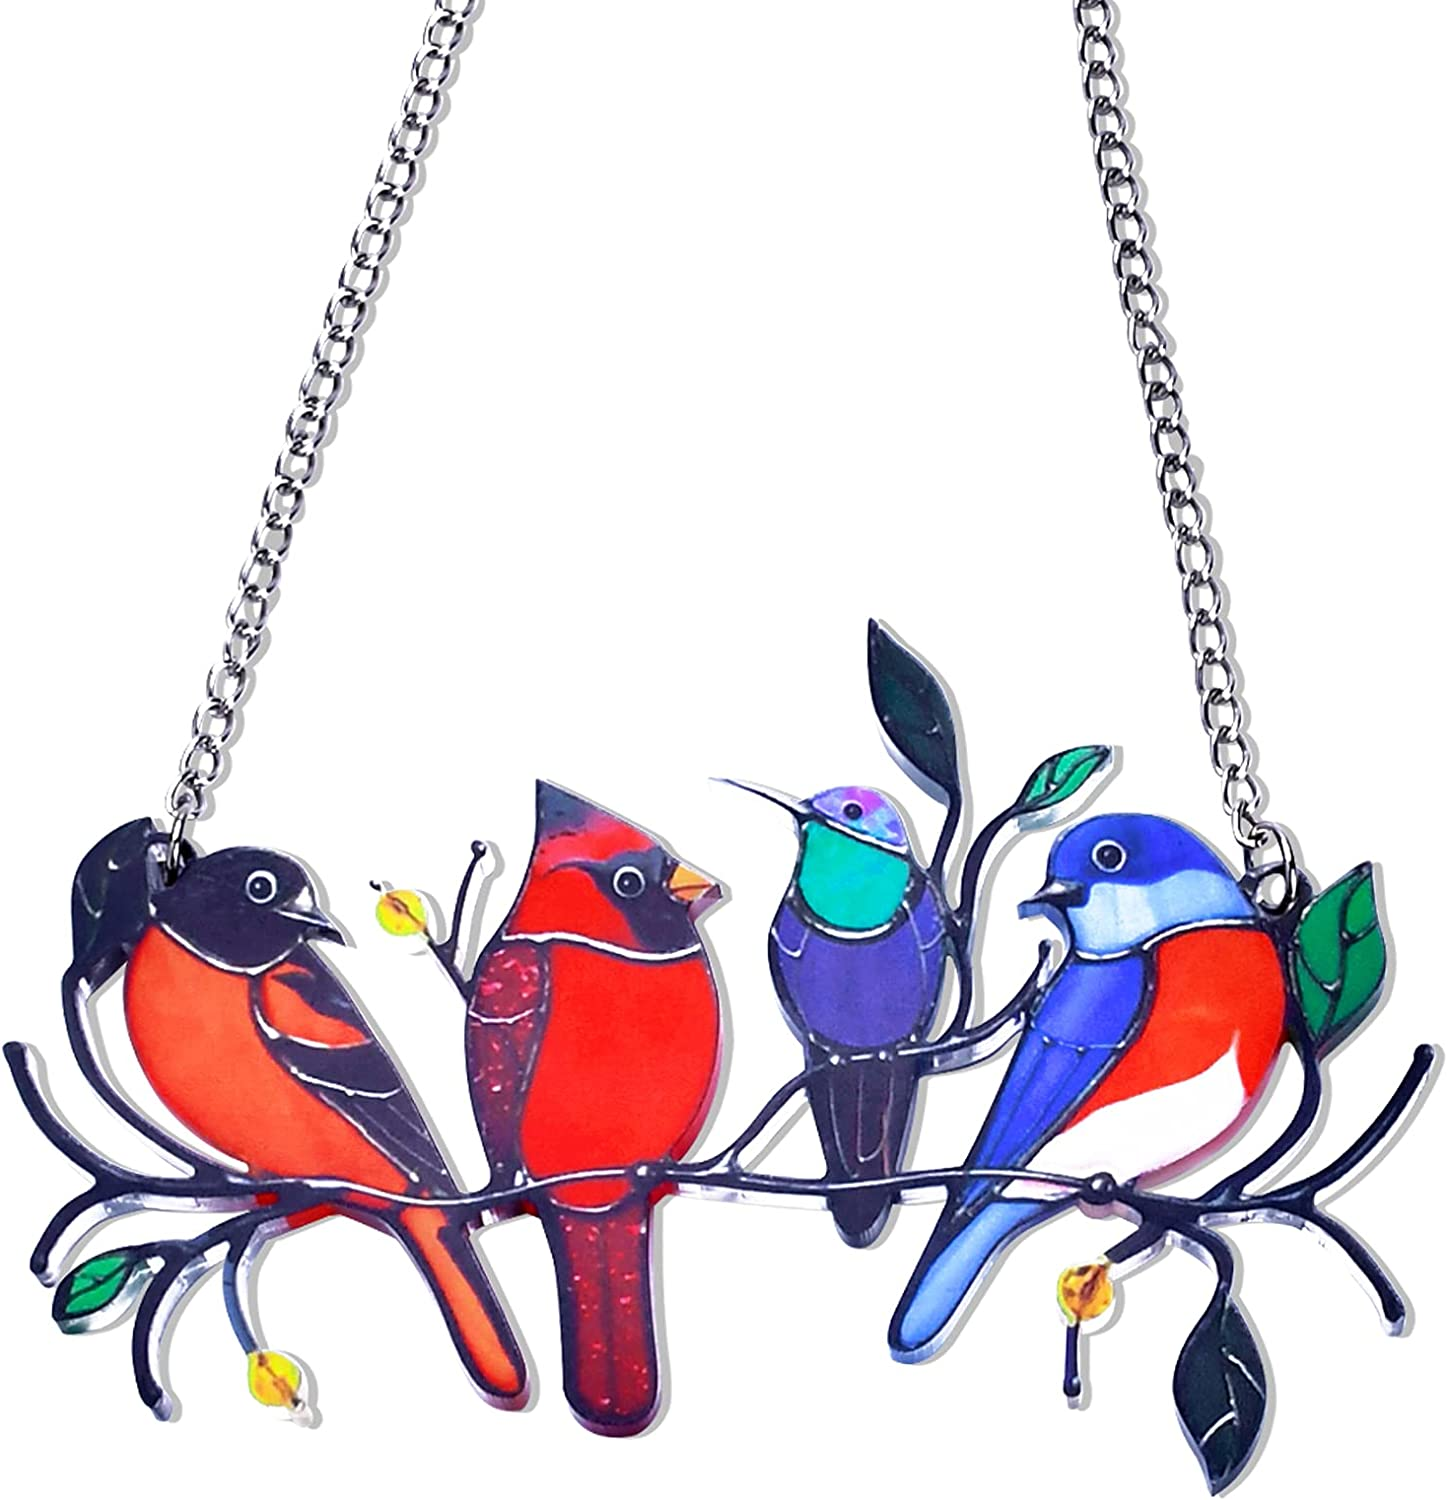 Multicolor Birds on a Wire Stained Glass Birds Window Hangings,Bird Suncatcher for Windows Decoration Pendant for Home Farmhouse Wall Decor,Windows Panel Ornament Decorations,Gifts for Bird Lovers